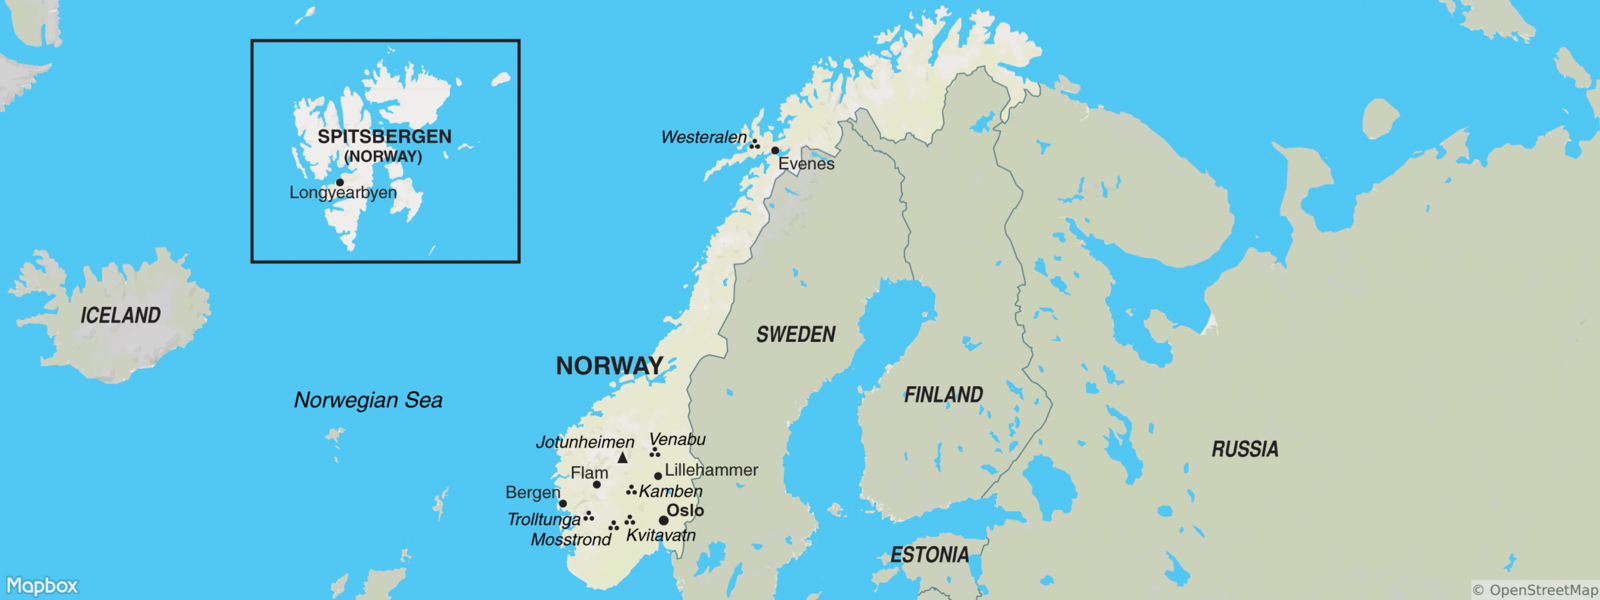 Norway with Spitsbergen map